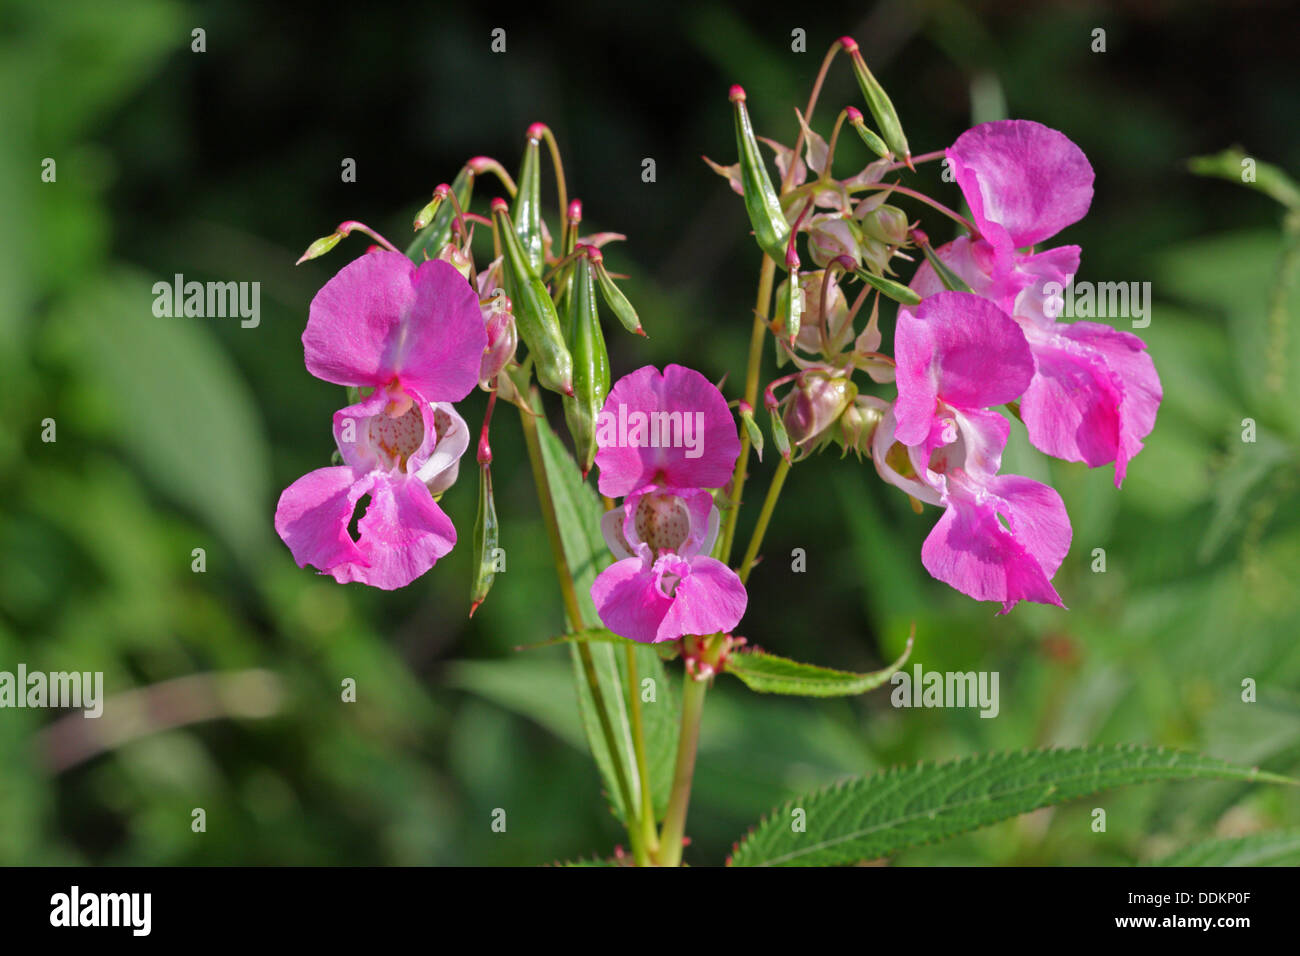 Himalayan Balsam, Impatiens glandulifera, Close-up of flowers, Lea Valley, Essex, UK - Stock Image